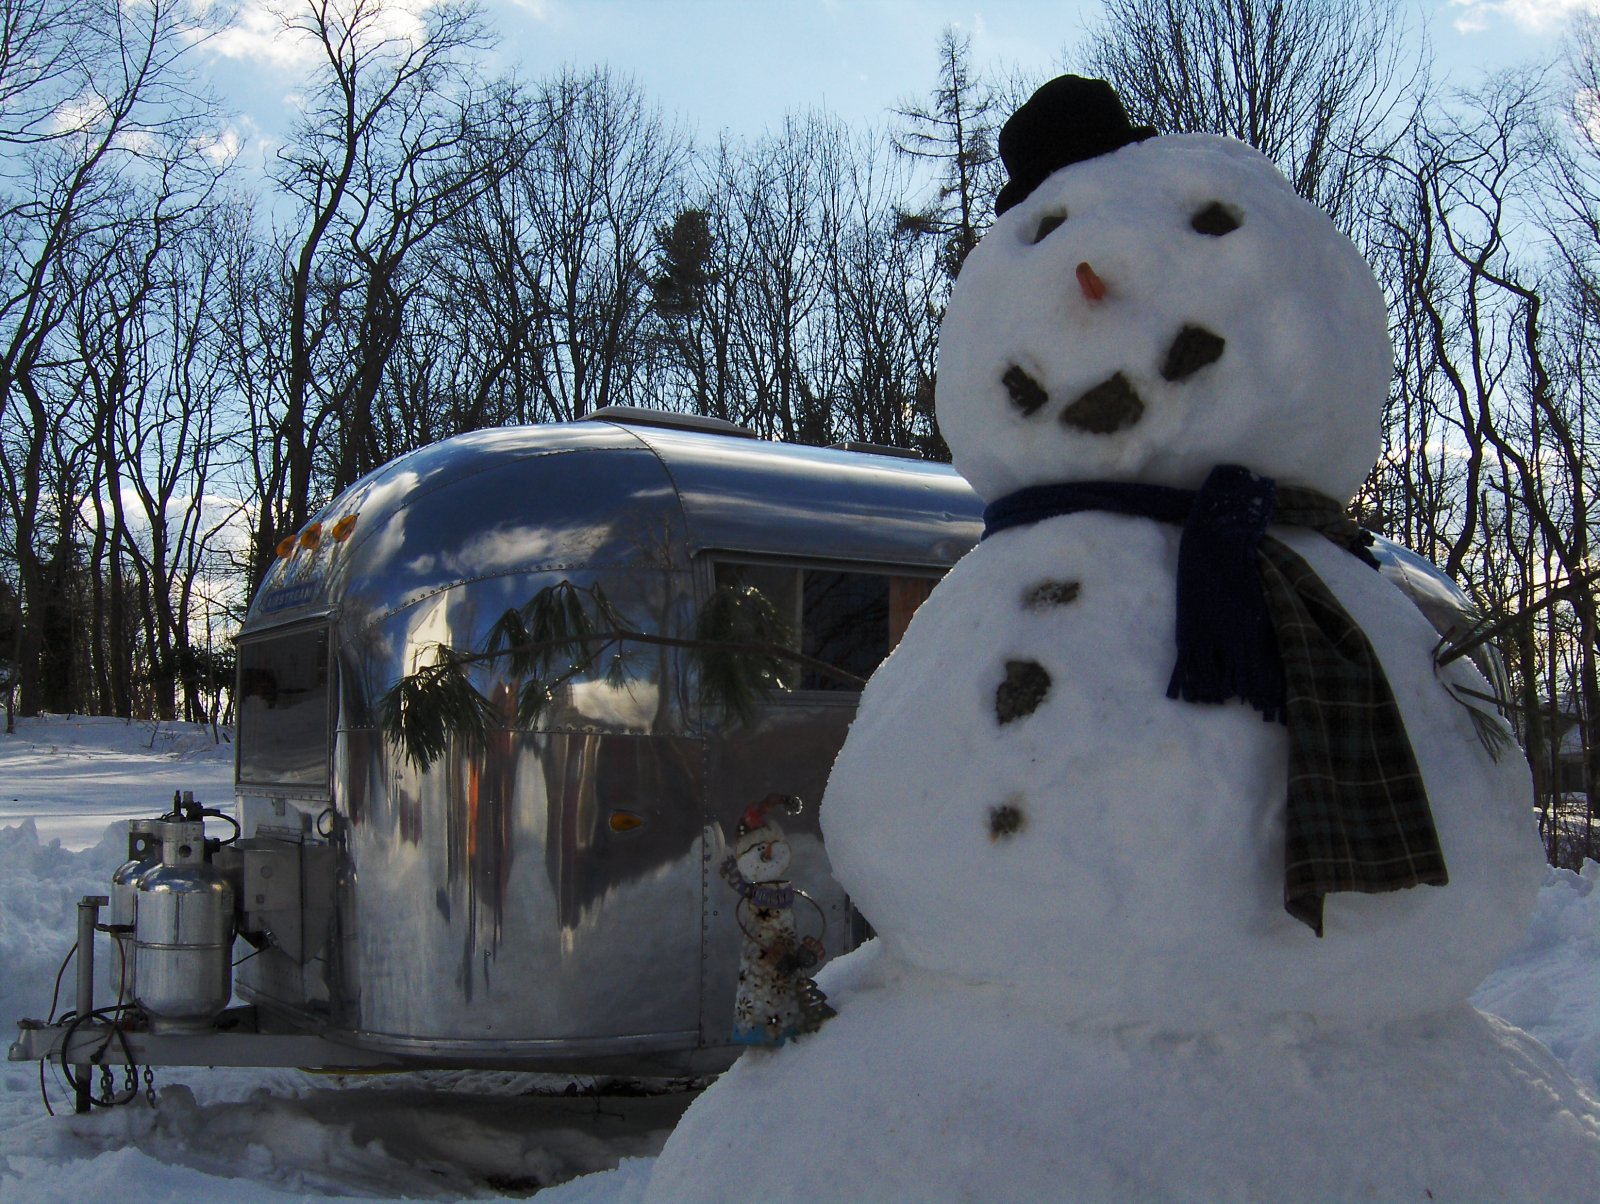 Click image for larger version  Name:snowman 054.jpg Views:147 Size:501.2 KB ID:146646